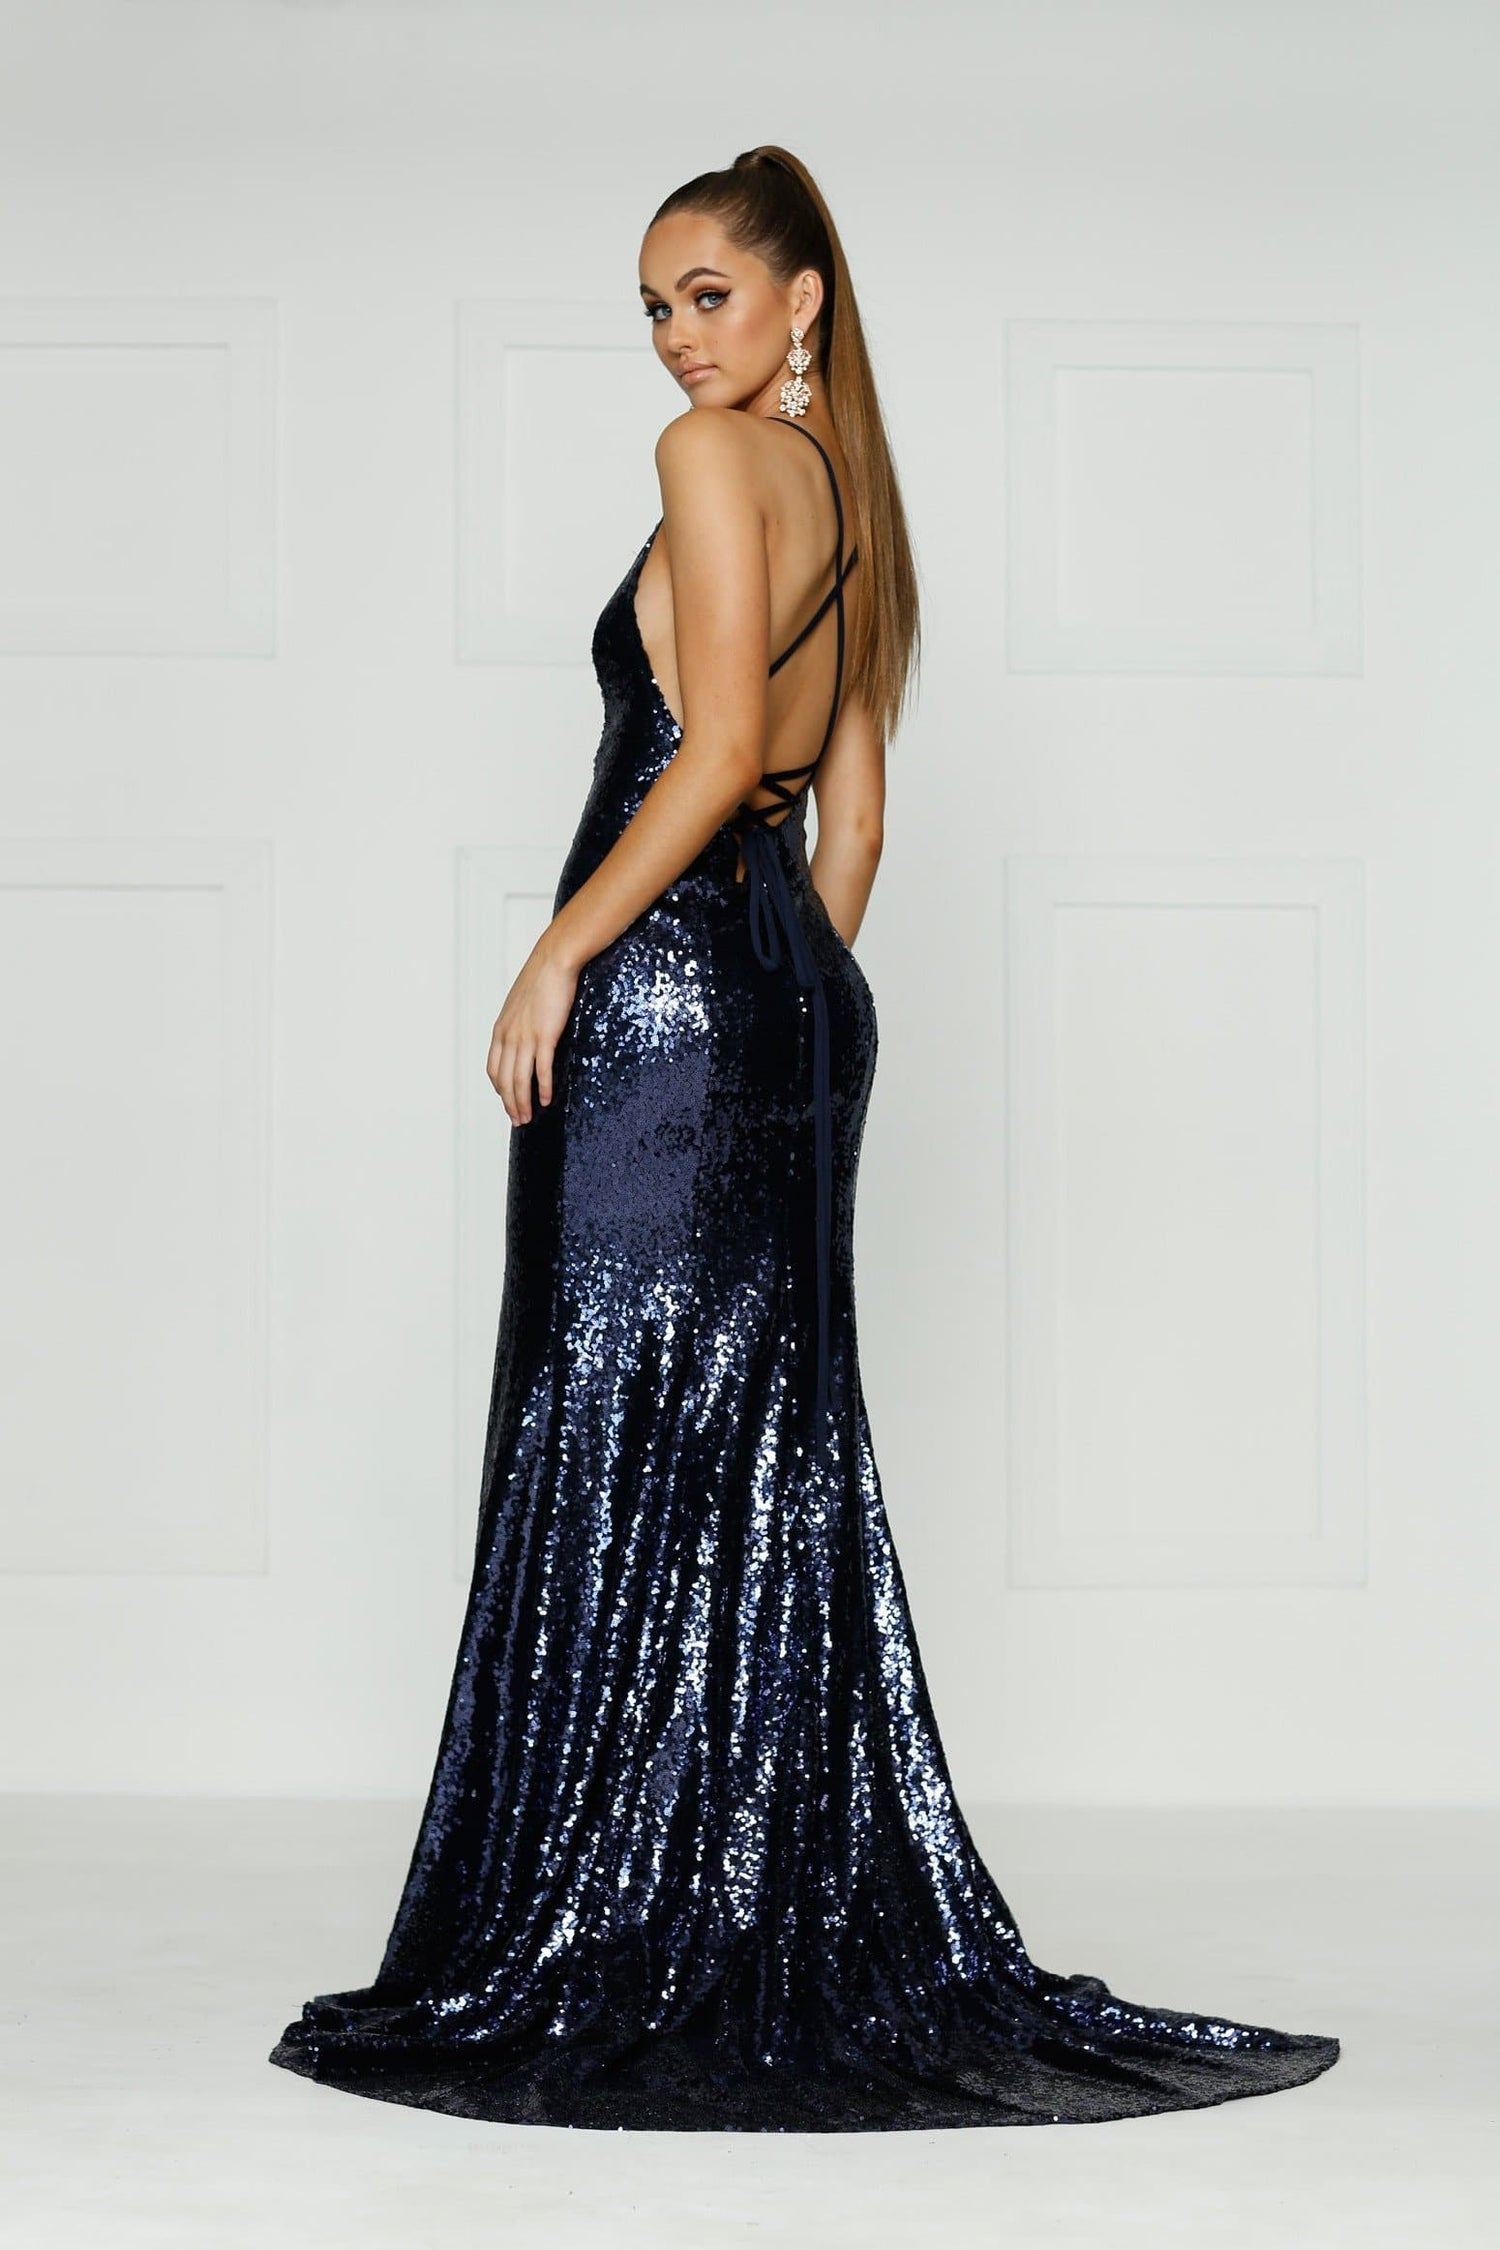 A&N Kendall - Navy Sequin Dress with V Neck and Criss Cross Back